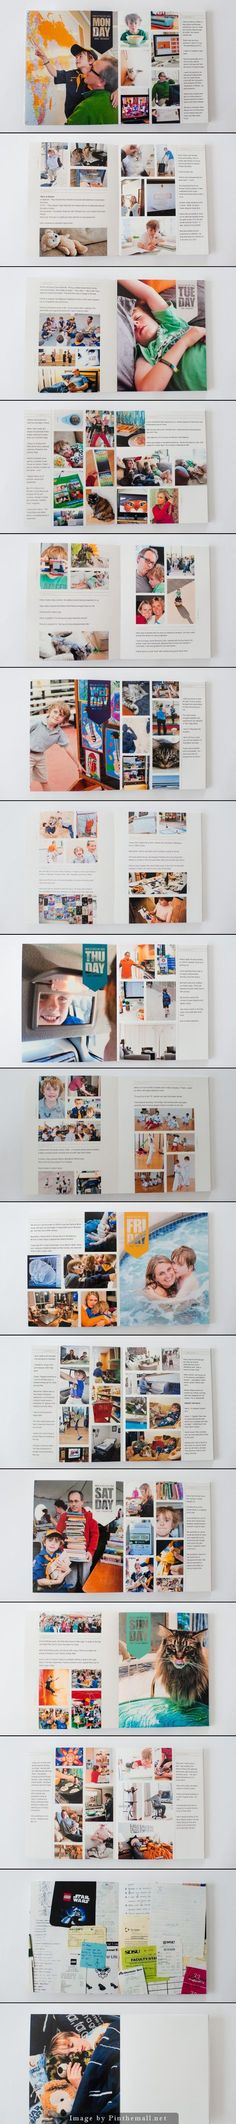 Clean & simple grid structure with focus on images. Love the scanned paper memorabilia. | Week In the Life Photo Book from surf and sea design